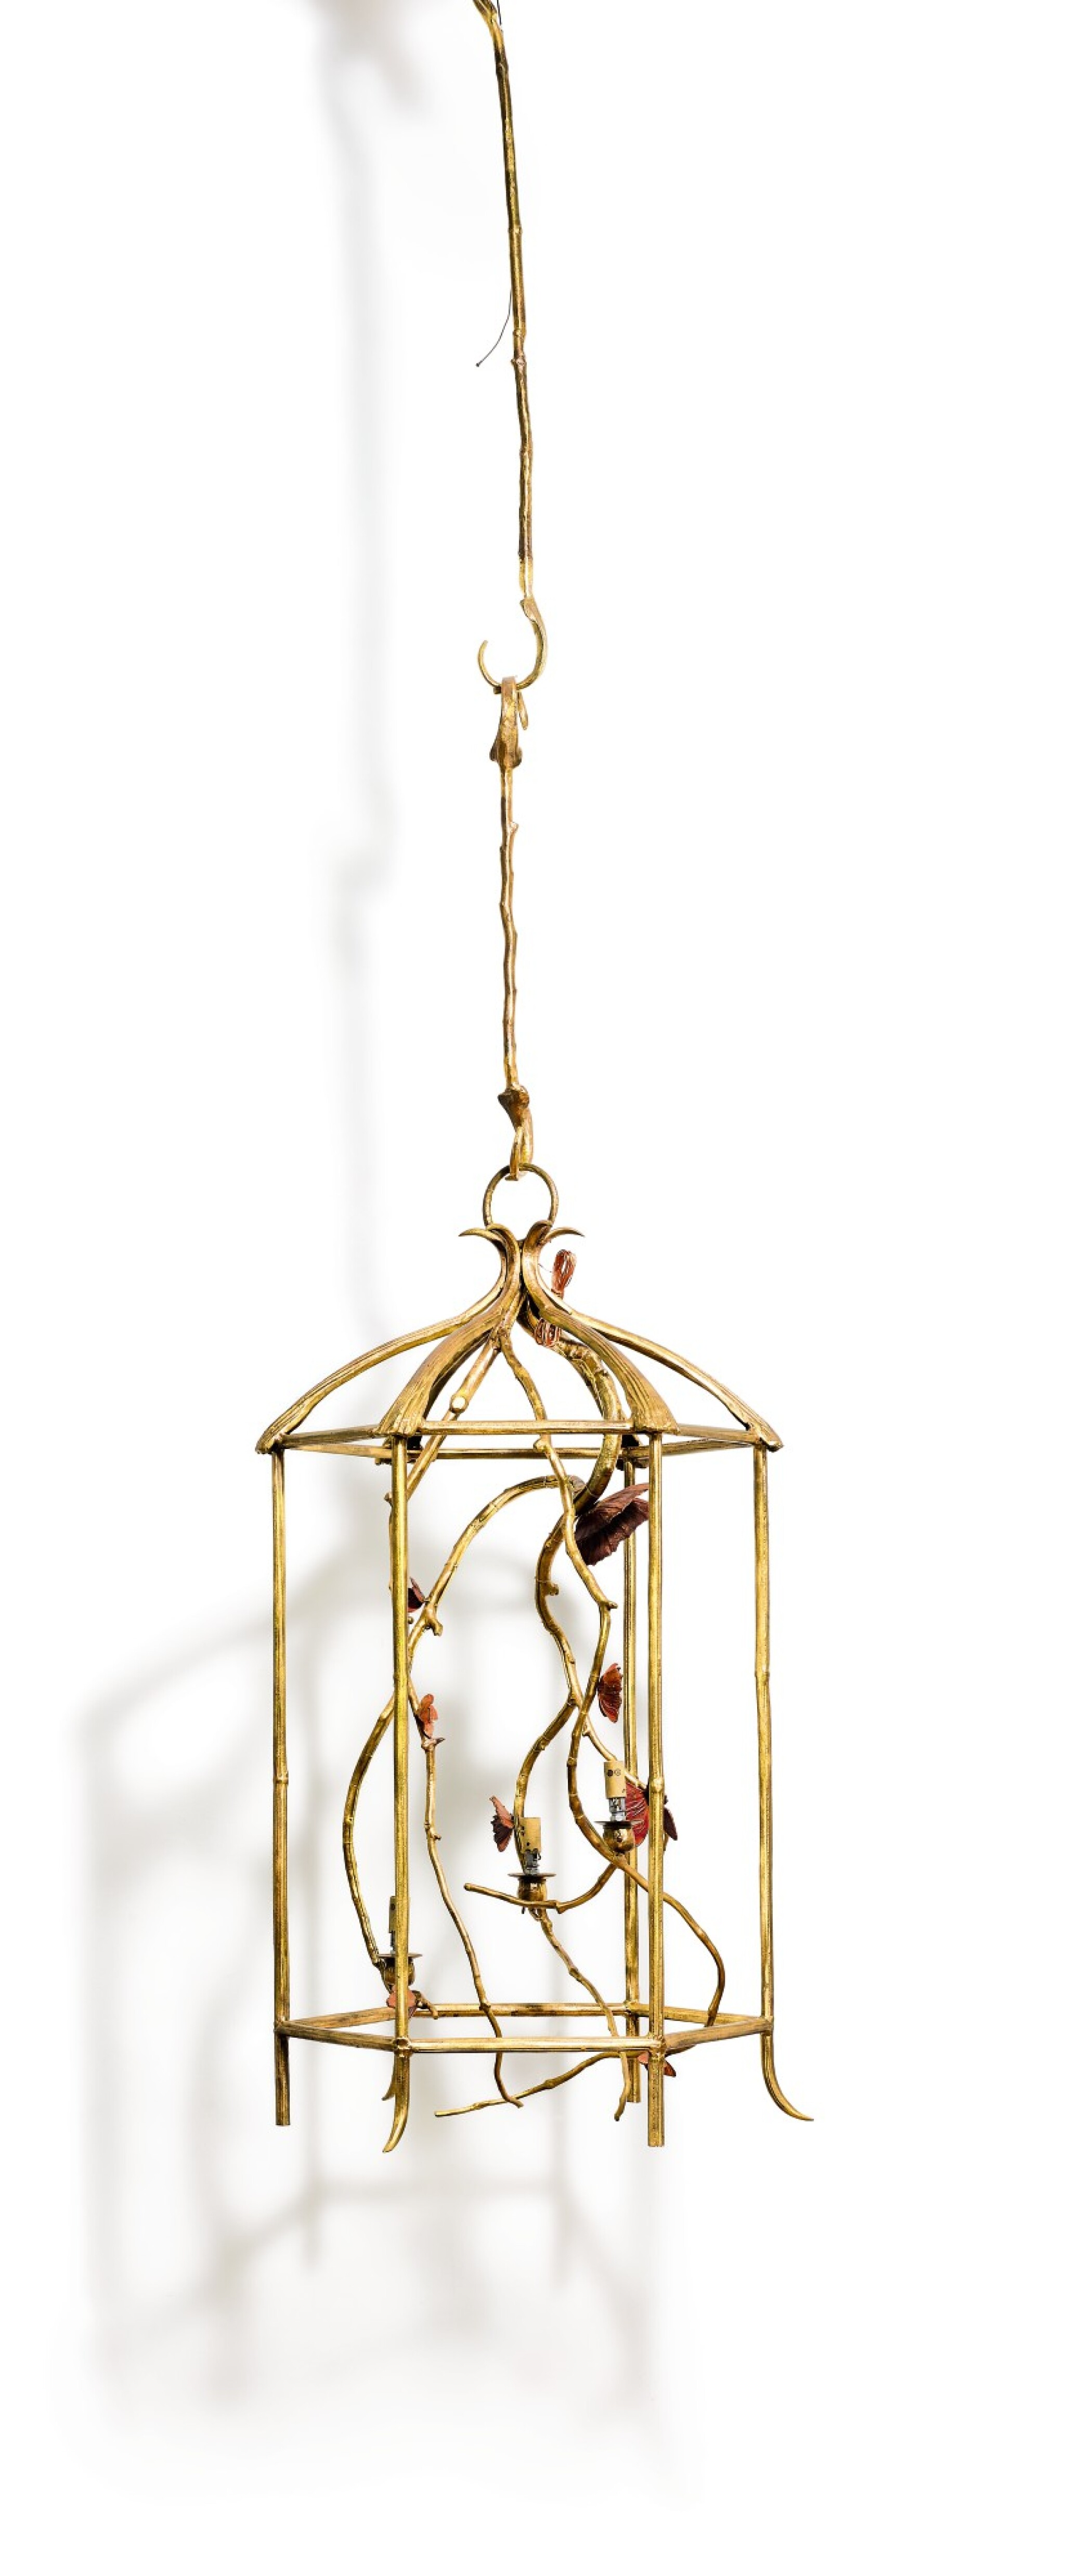 View full screen - View 1 of Lot 544. CLAUDE LALANNE 克洛德·萊蘭 | LANTERN WITH BUTTERFLIES 蝴蝶吊燈.